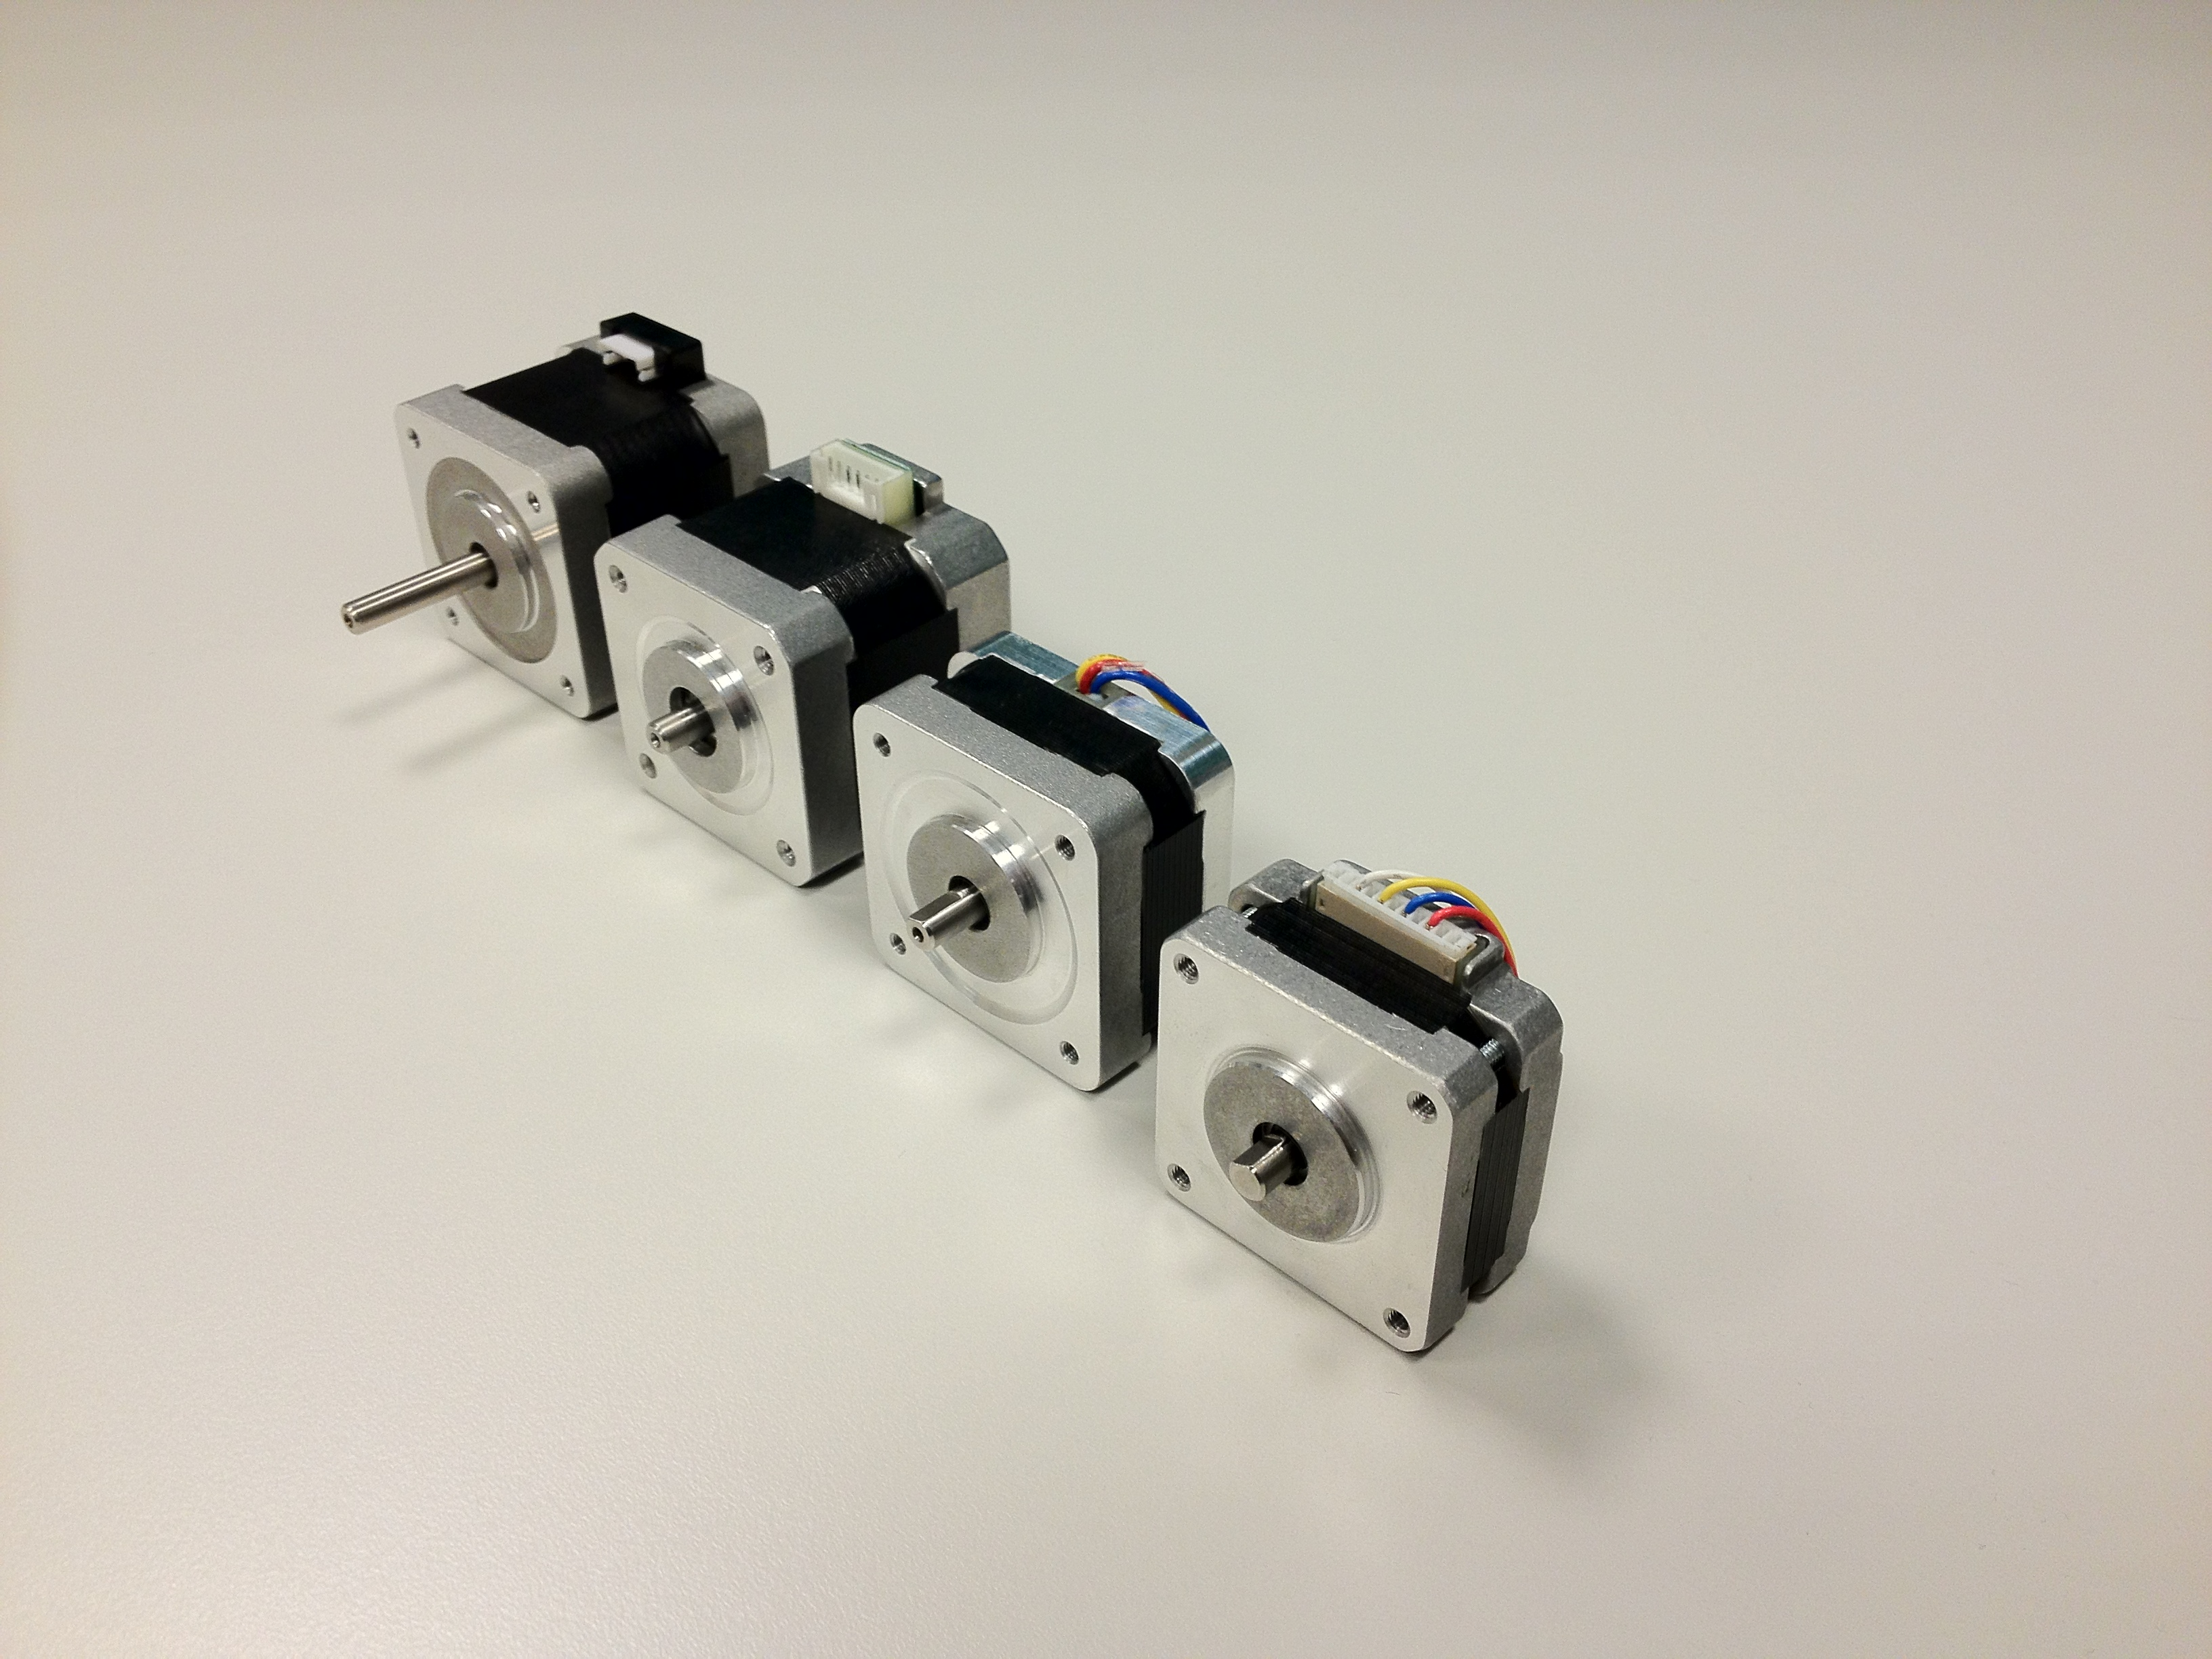 Cda fulling range of 3 phase stepper motors for 3 phase stepper motor